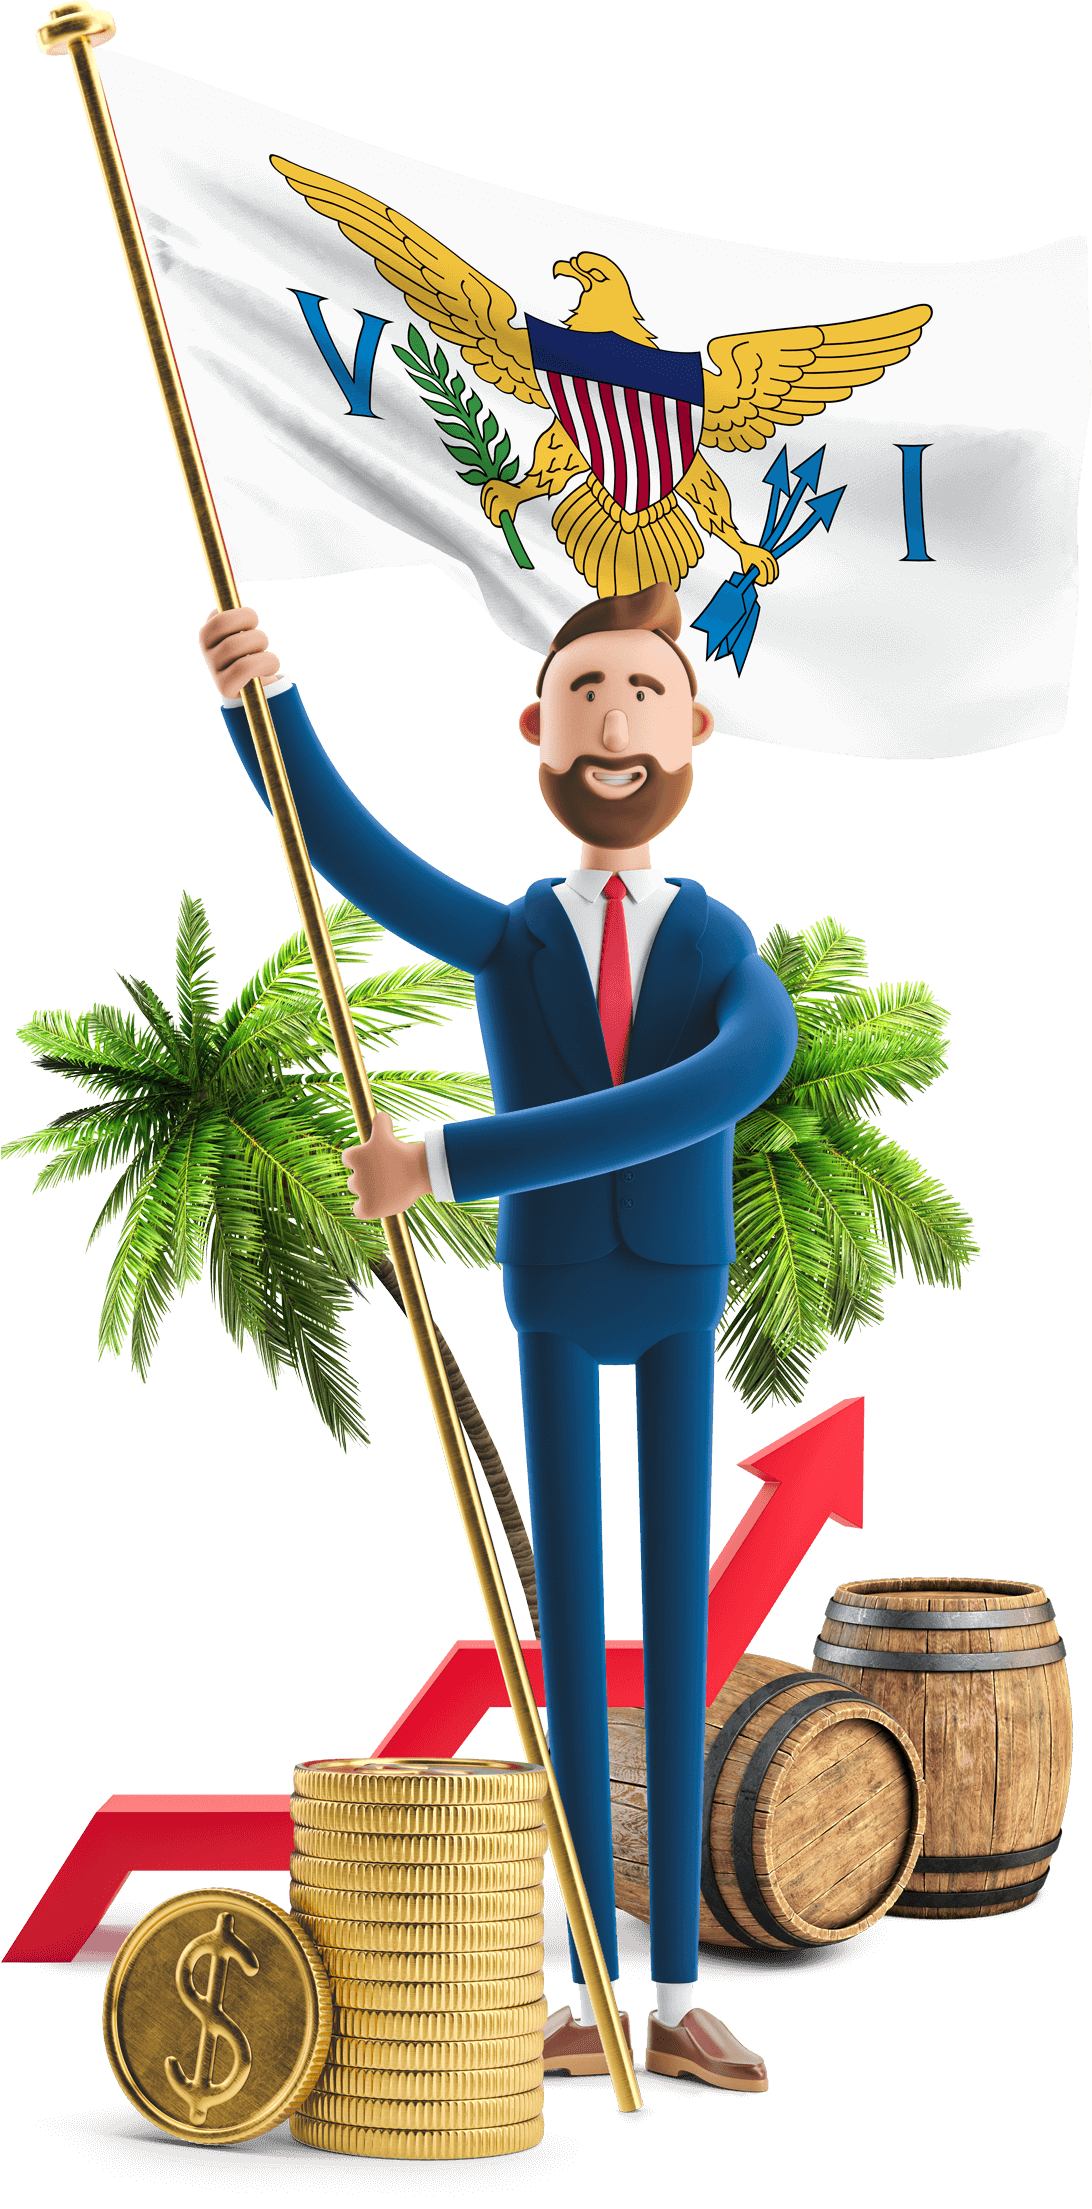 US Virgin Islands flag held by MetCredit USA businessman who standing in front of palm trees